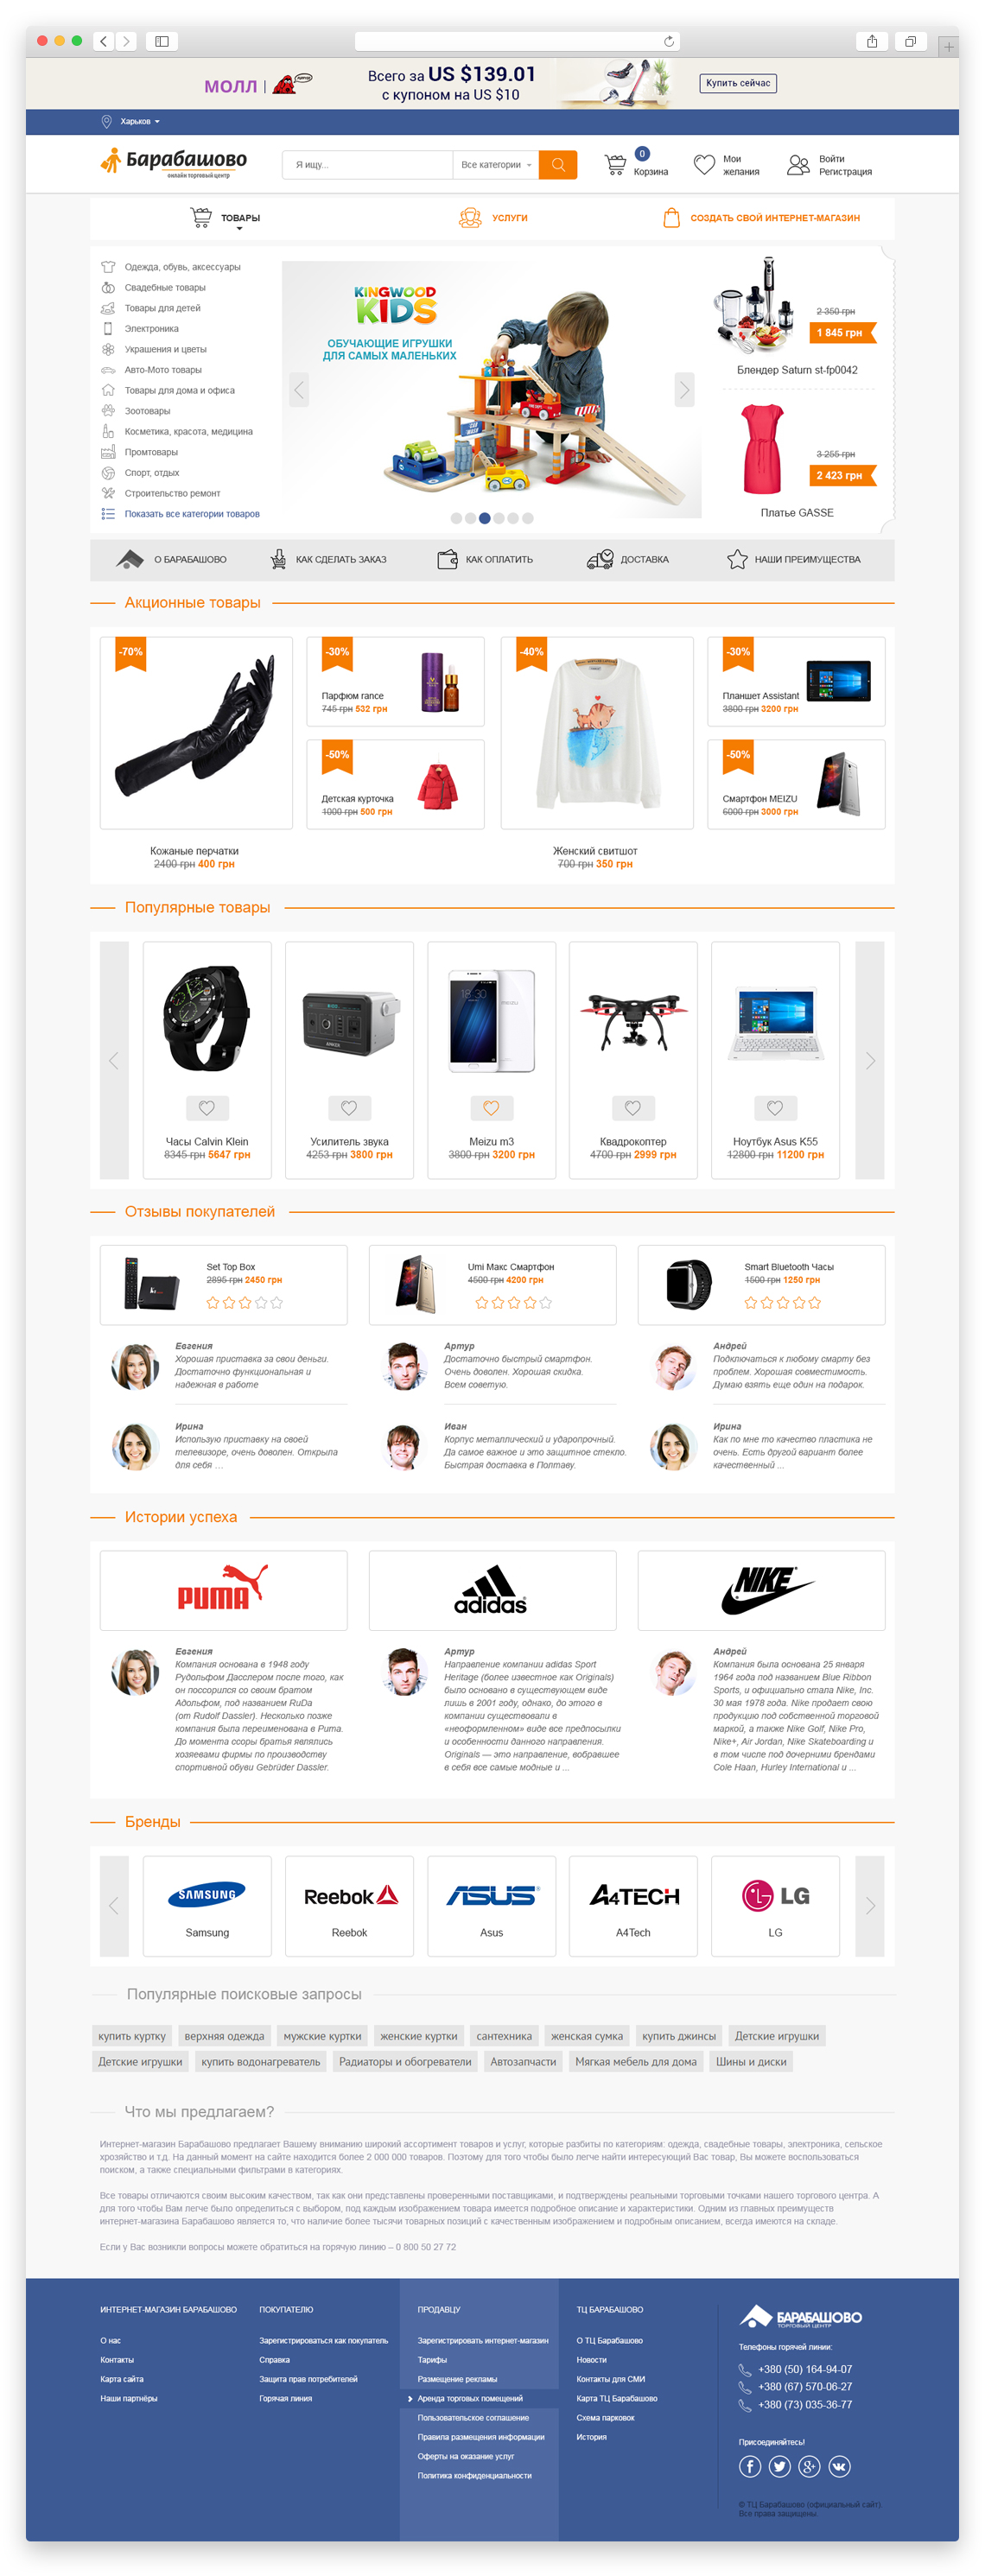 Online shopping center Barabashovo